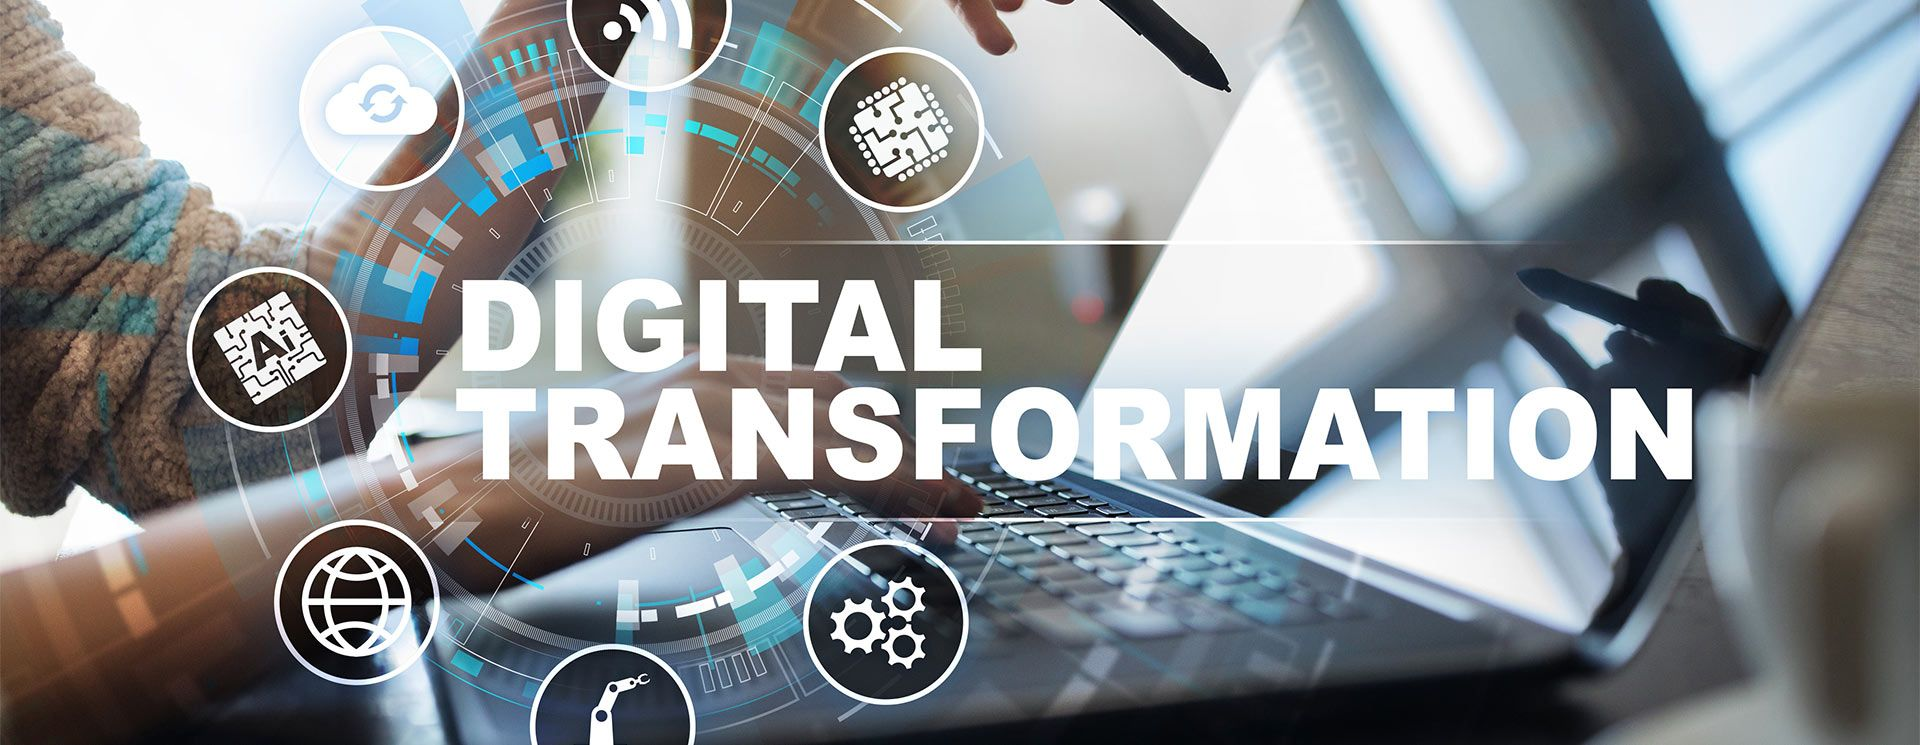 Digital Transformation Tools